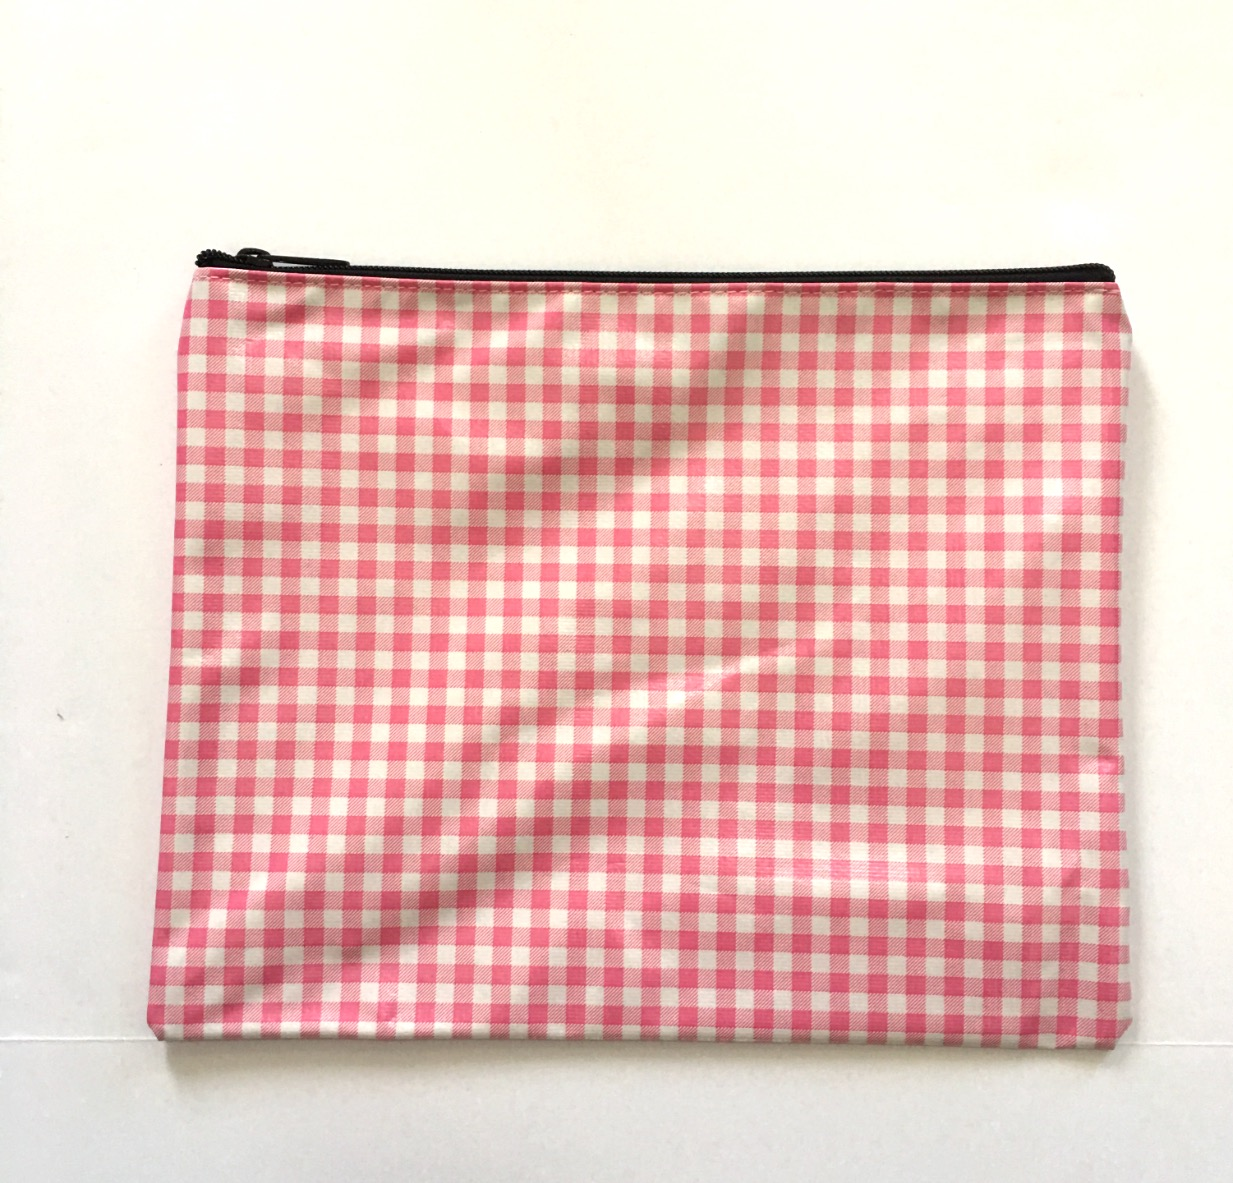 ZP-Gingham Pink